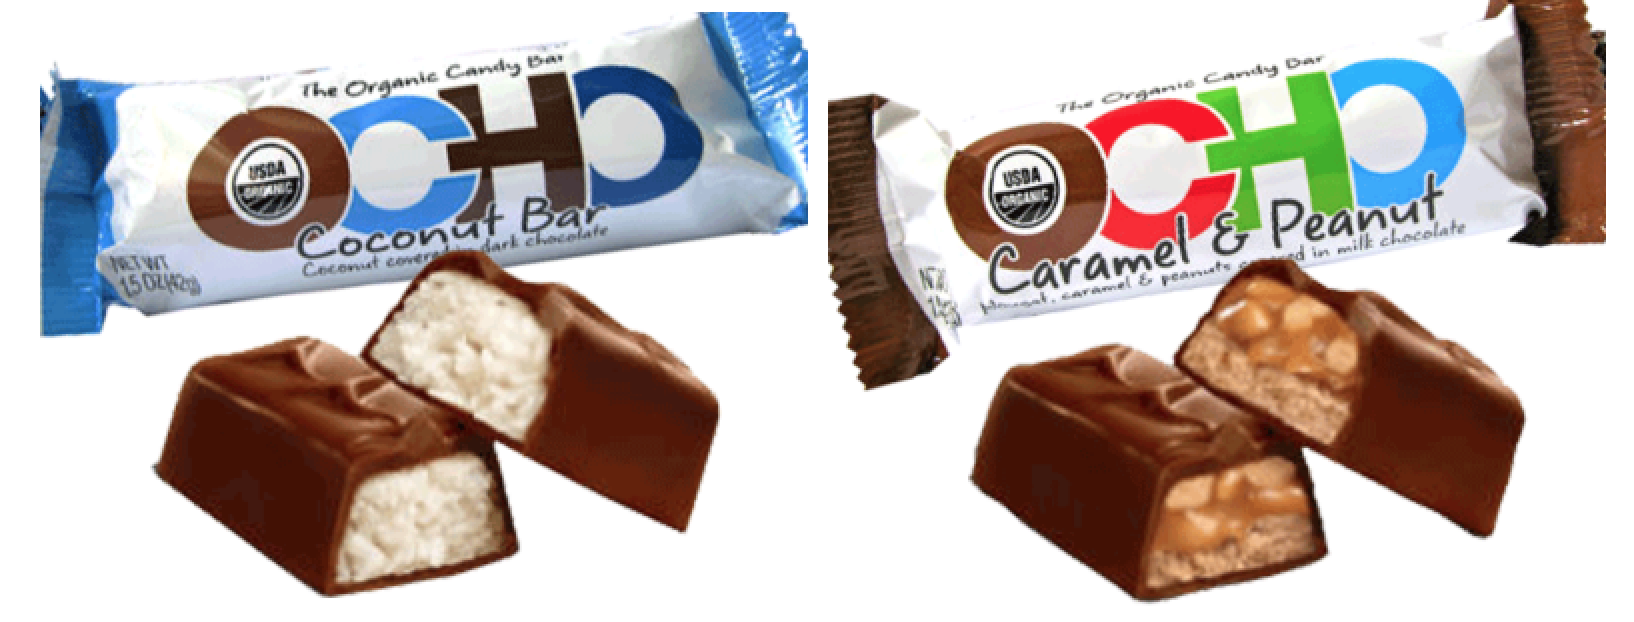 ... -Free & Organic Candy: $1 off any Product Coupon! - The Binder Ladies